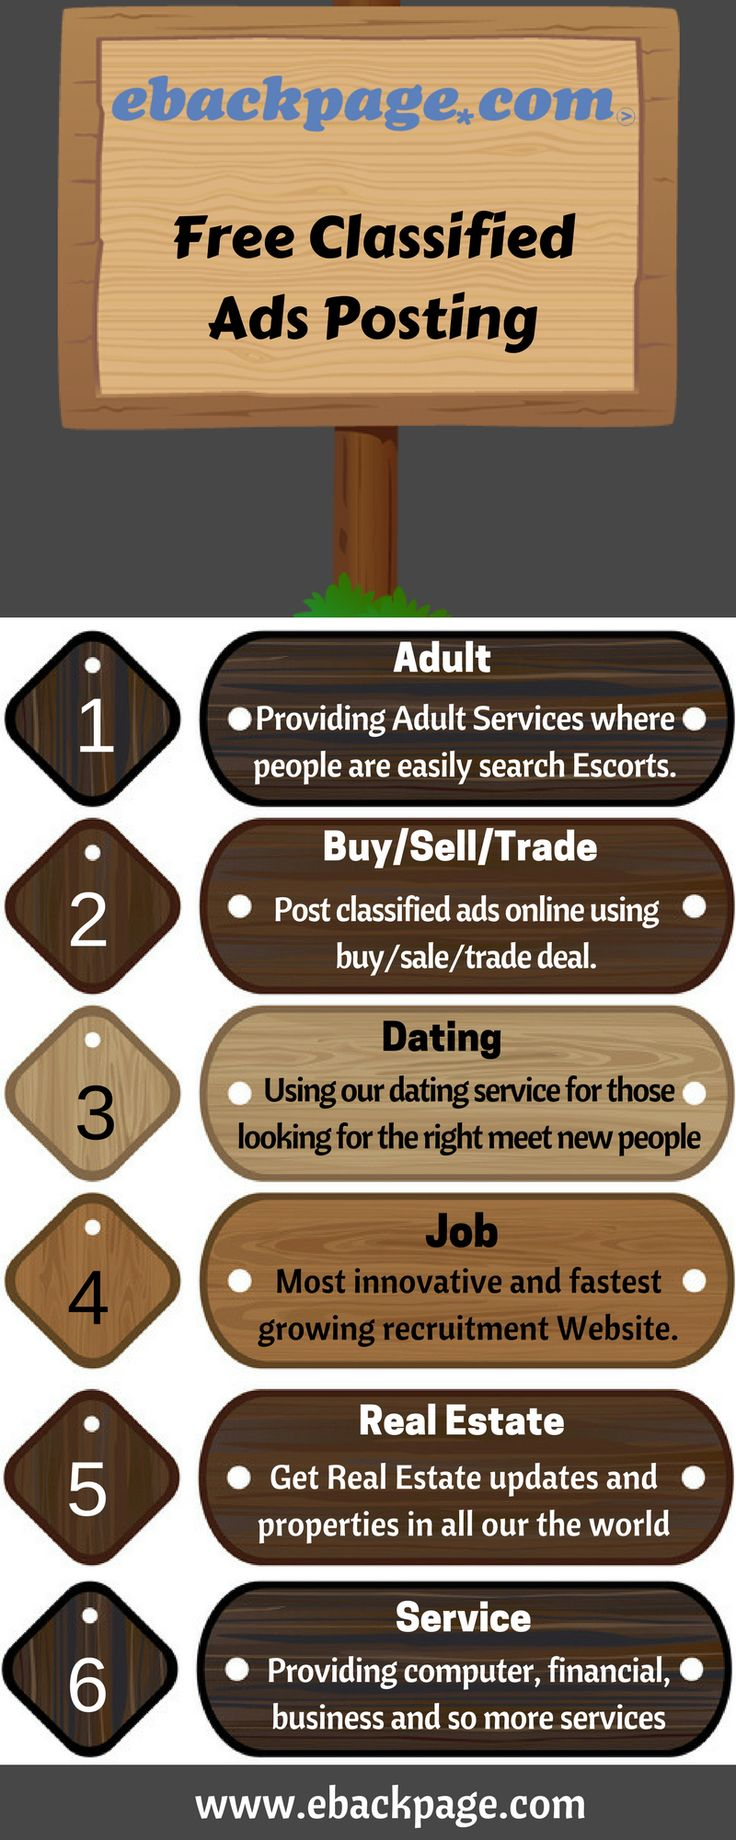 If you're looking for private ad sites like Backpage, you've arrive at the proper place. We have gathered a listing of the most truly effective rated free classified ads sites.  eBackpage is one of the best classified ads sites online with an incredible number of daily users from all over the world.